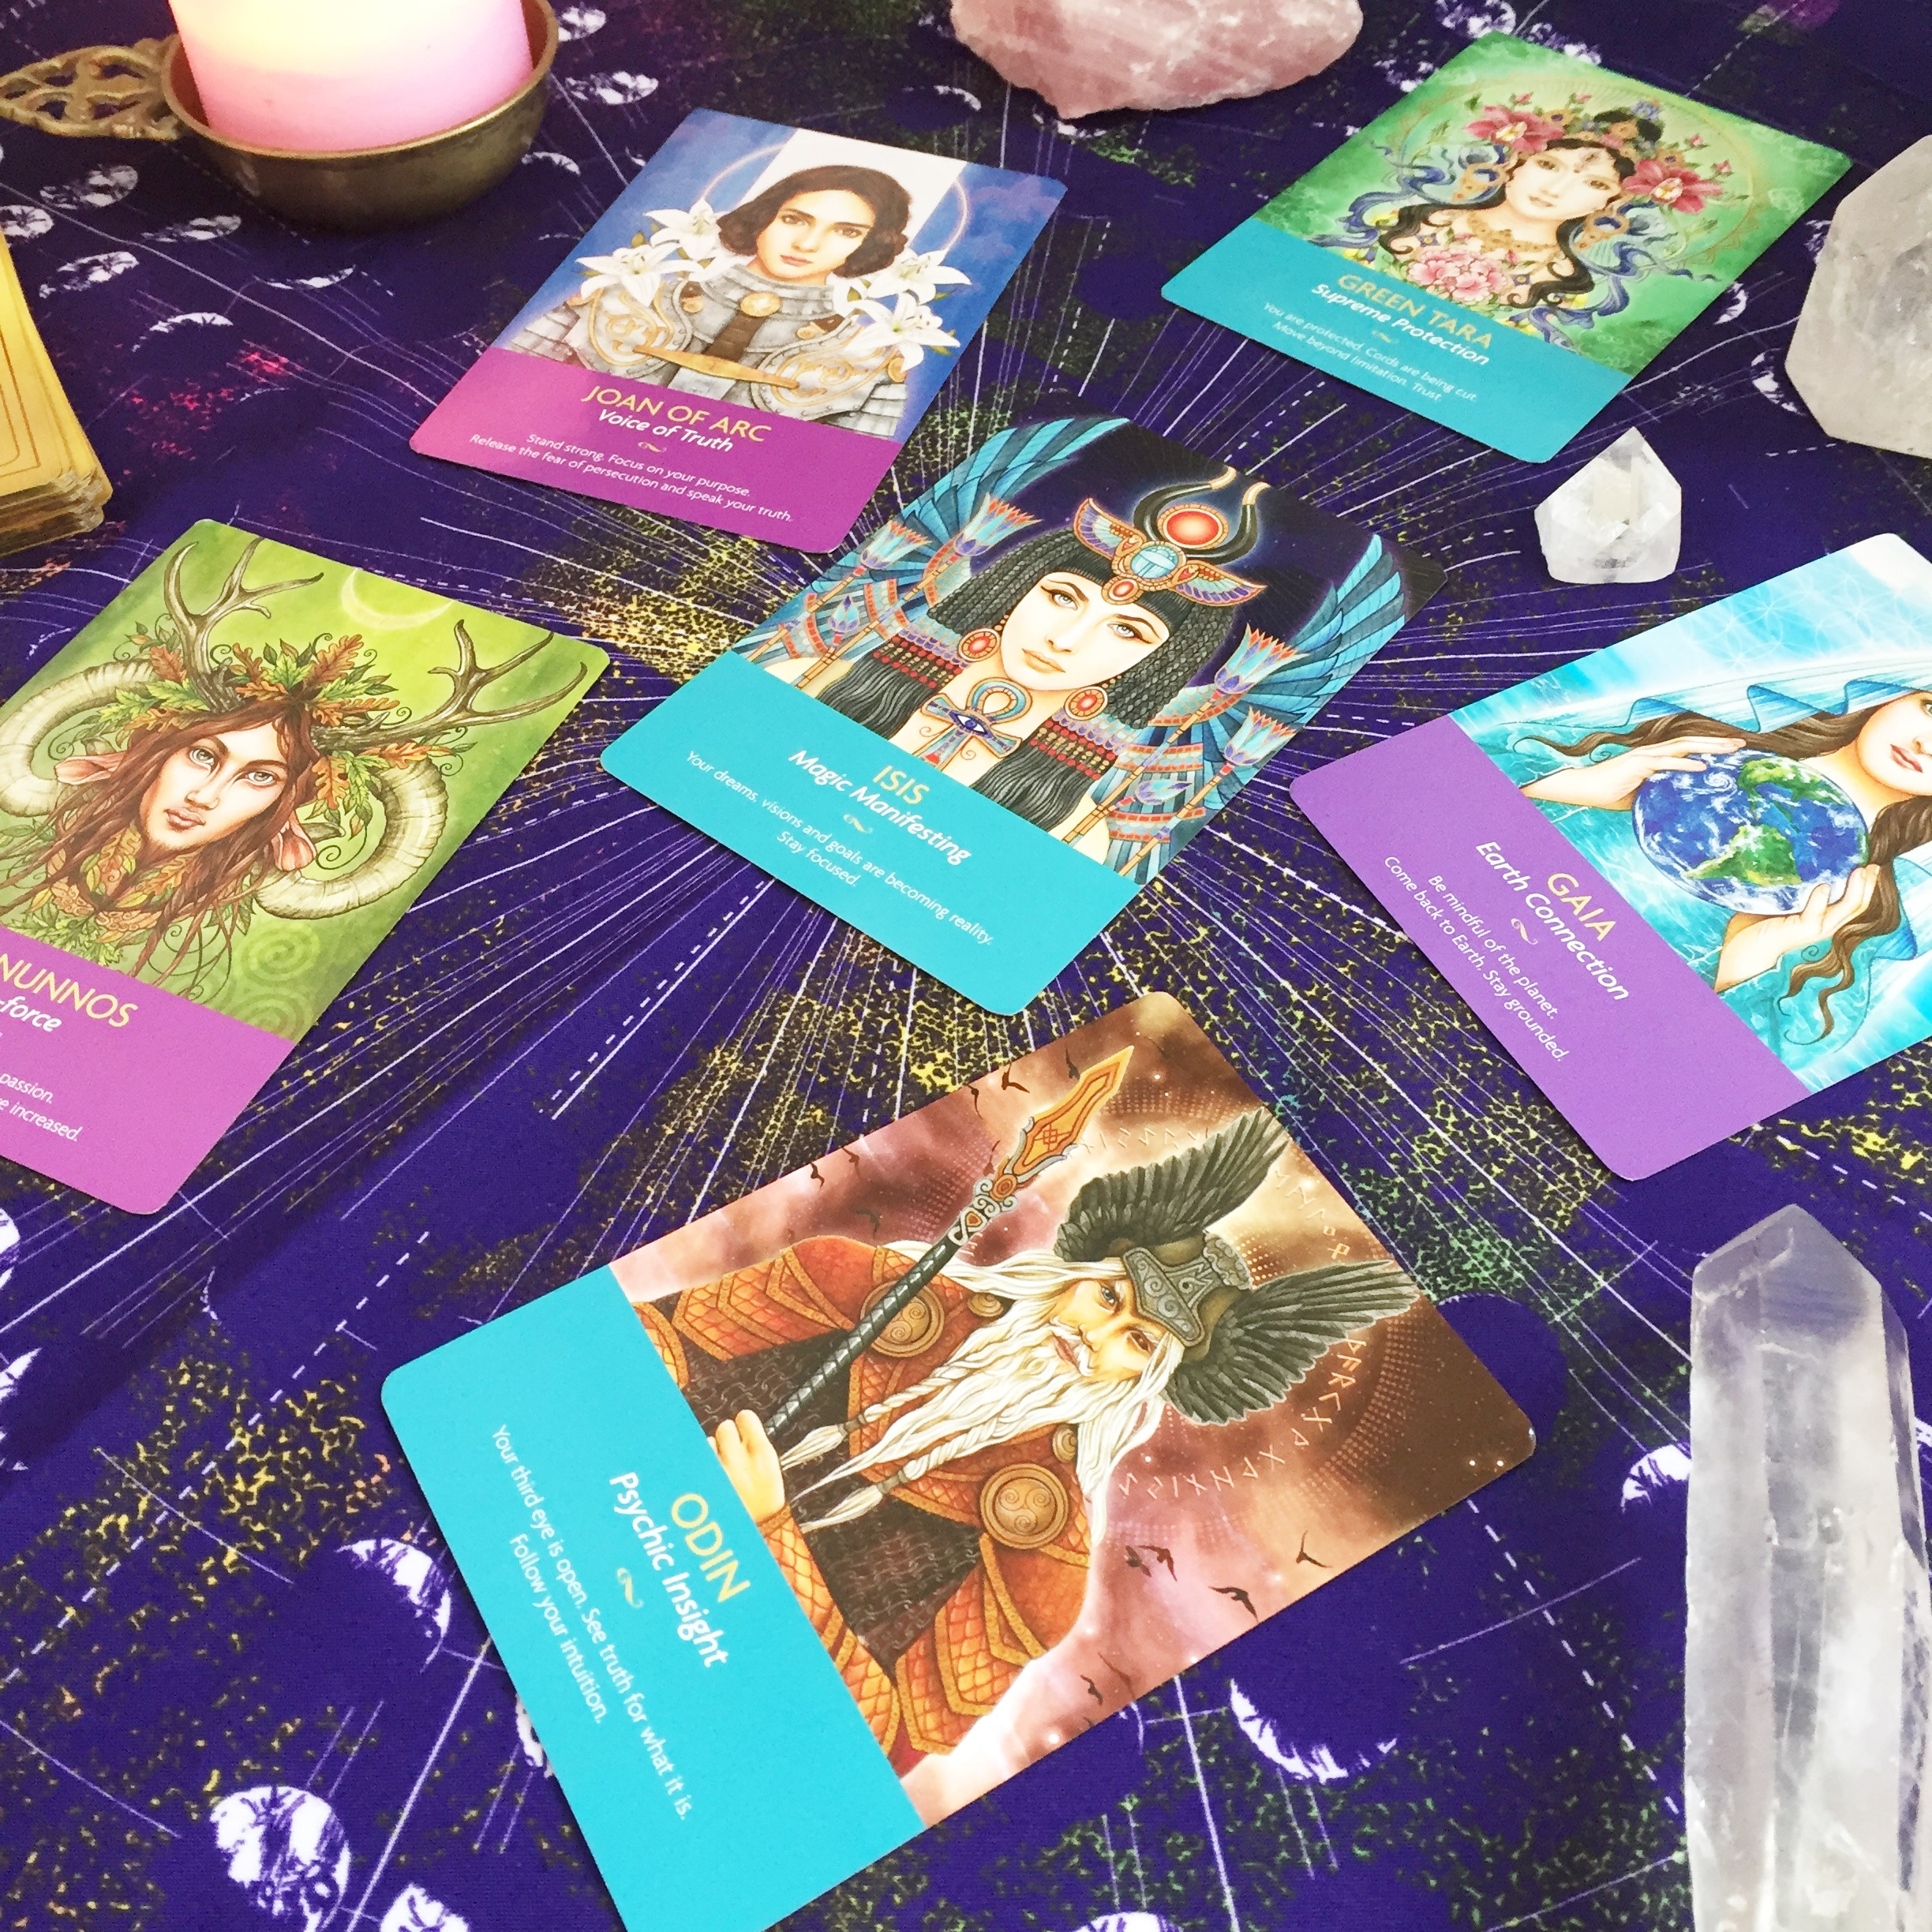 The Keepers of the Light Oracle are perfect for this spread! x